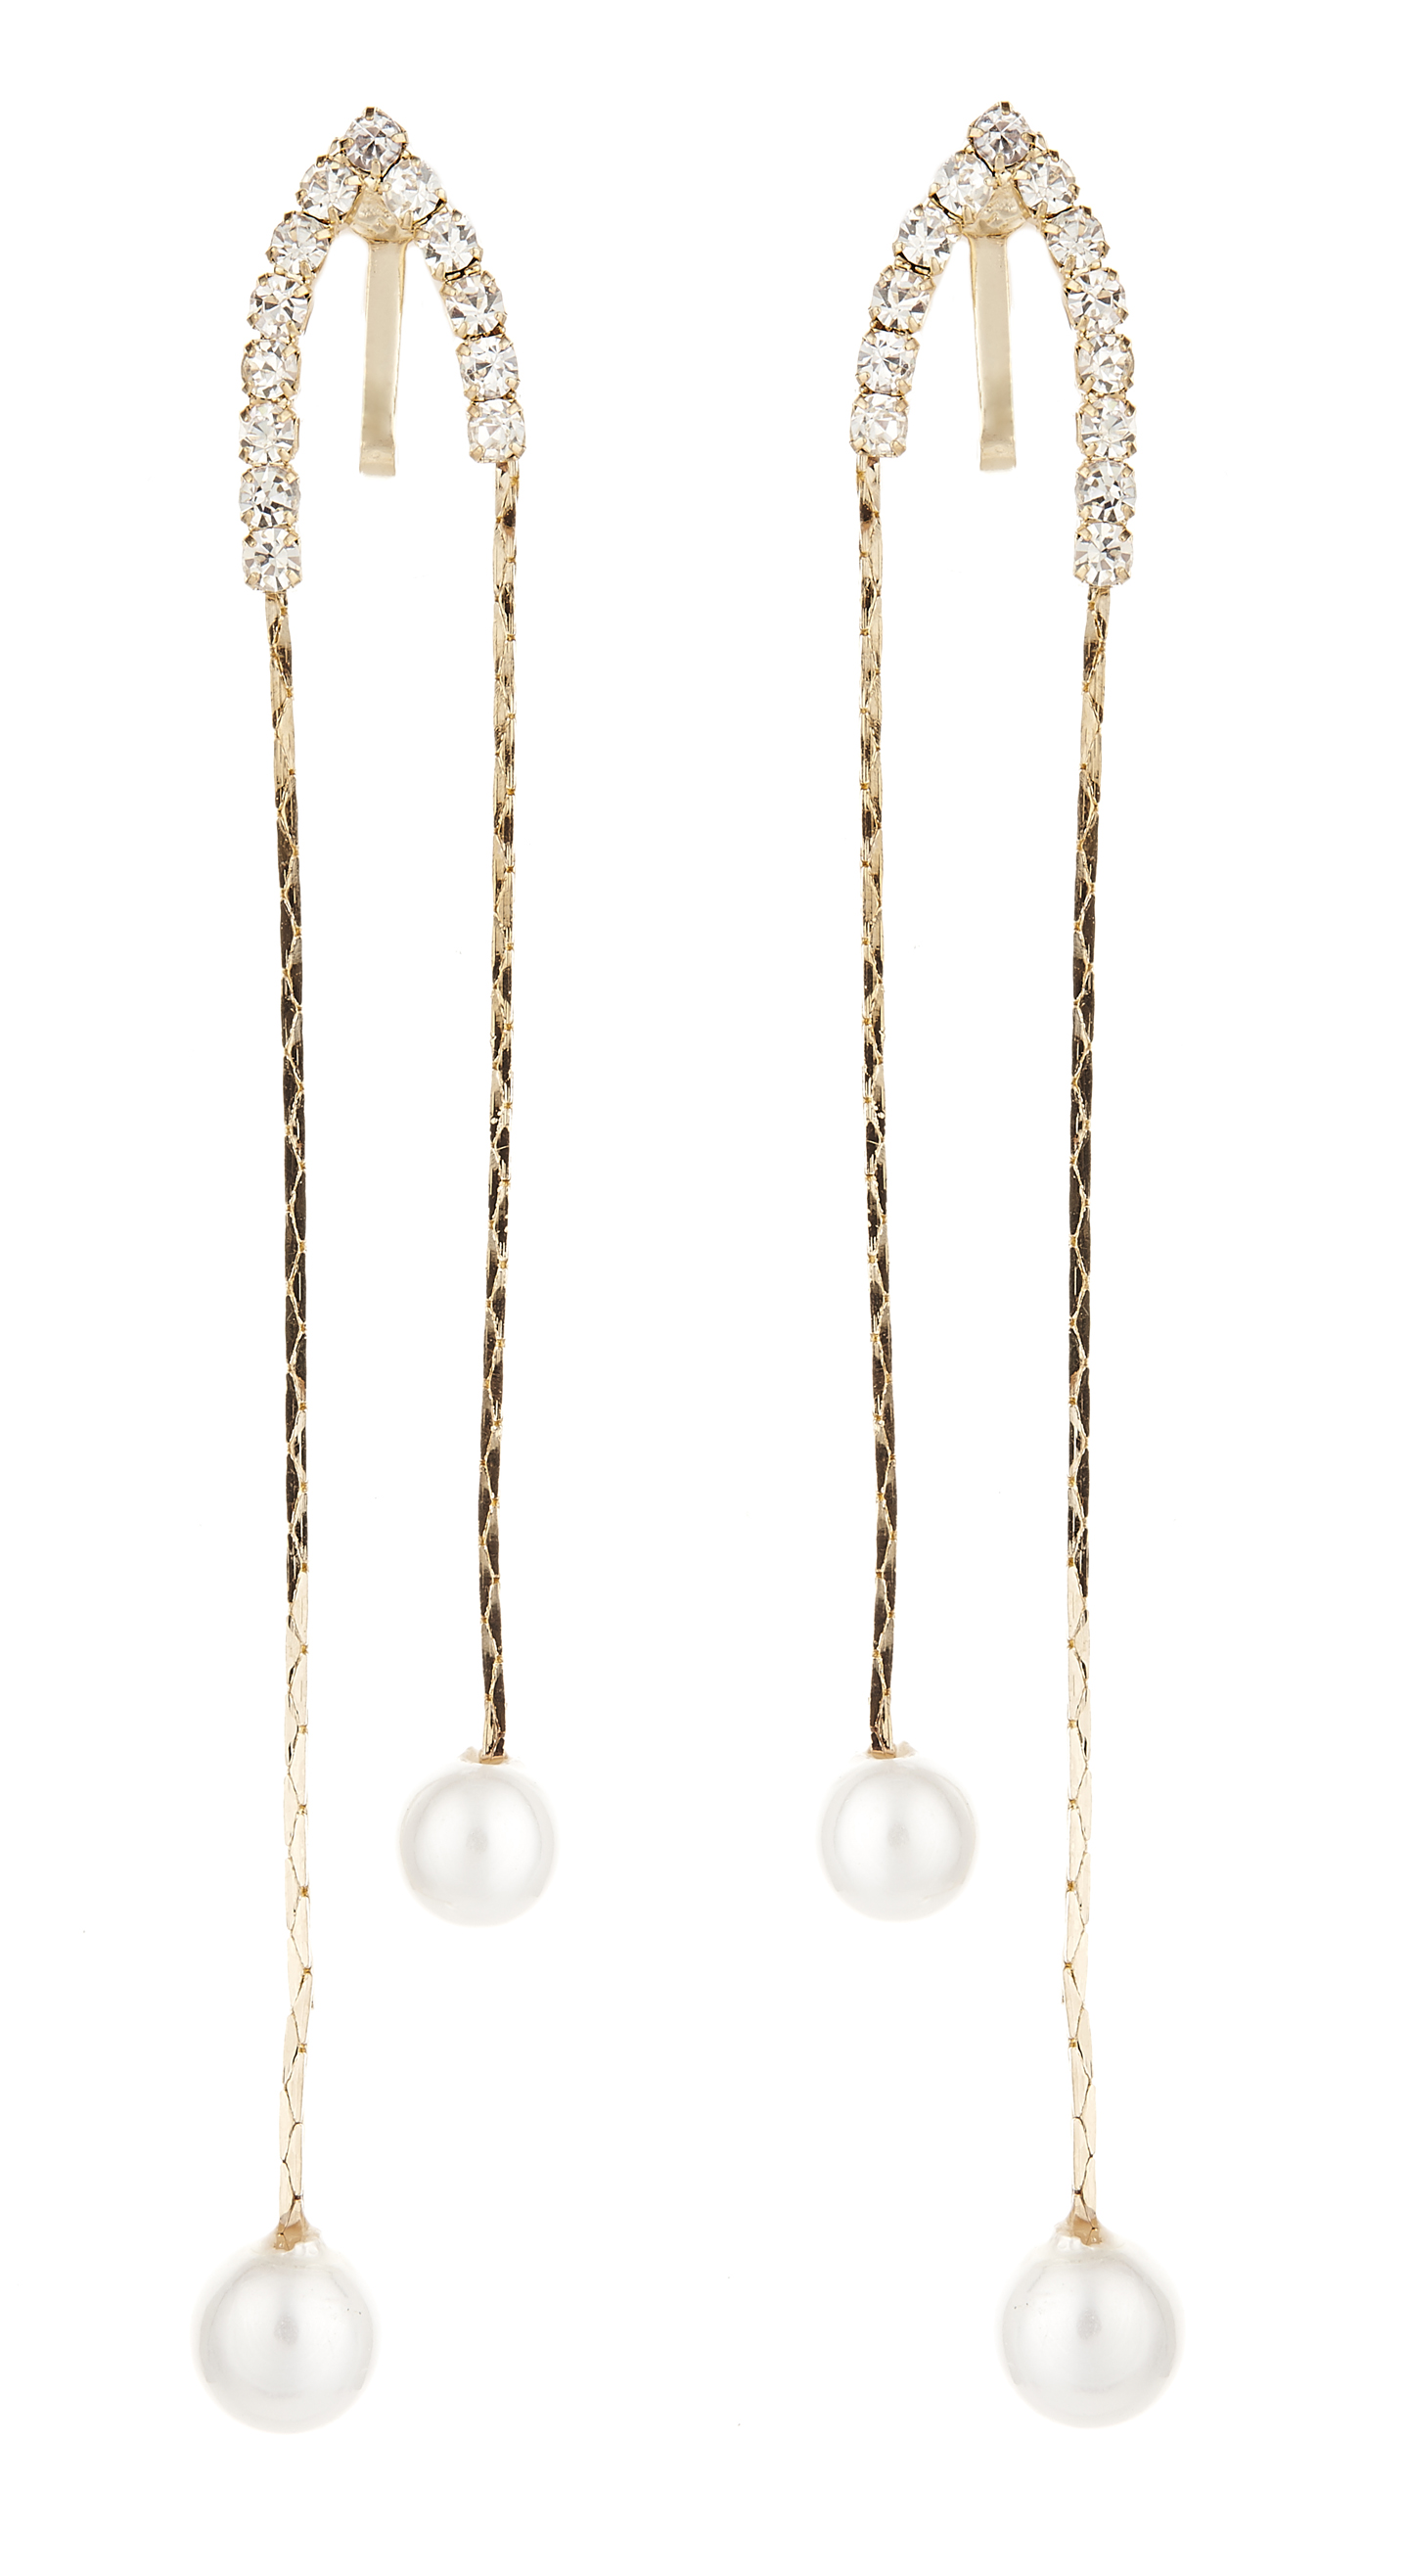 Clip On Earrings - Ceri - gold earring with clear crystals and pearls